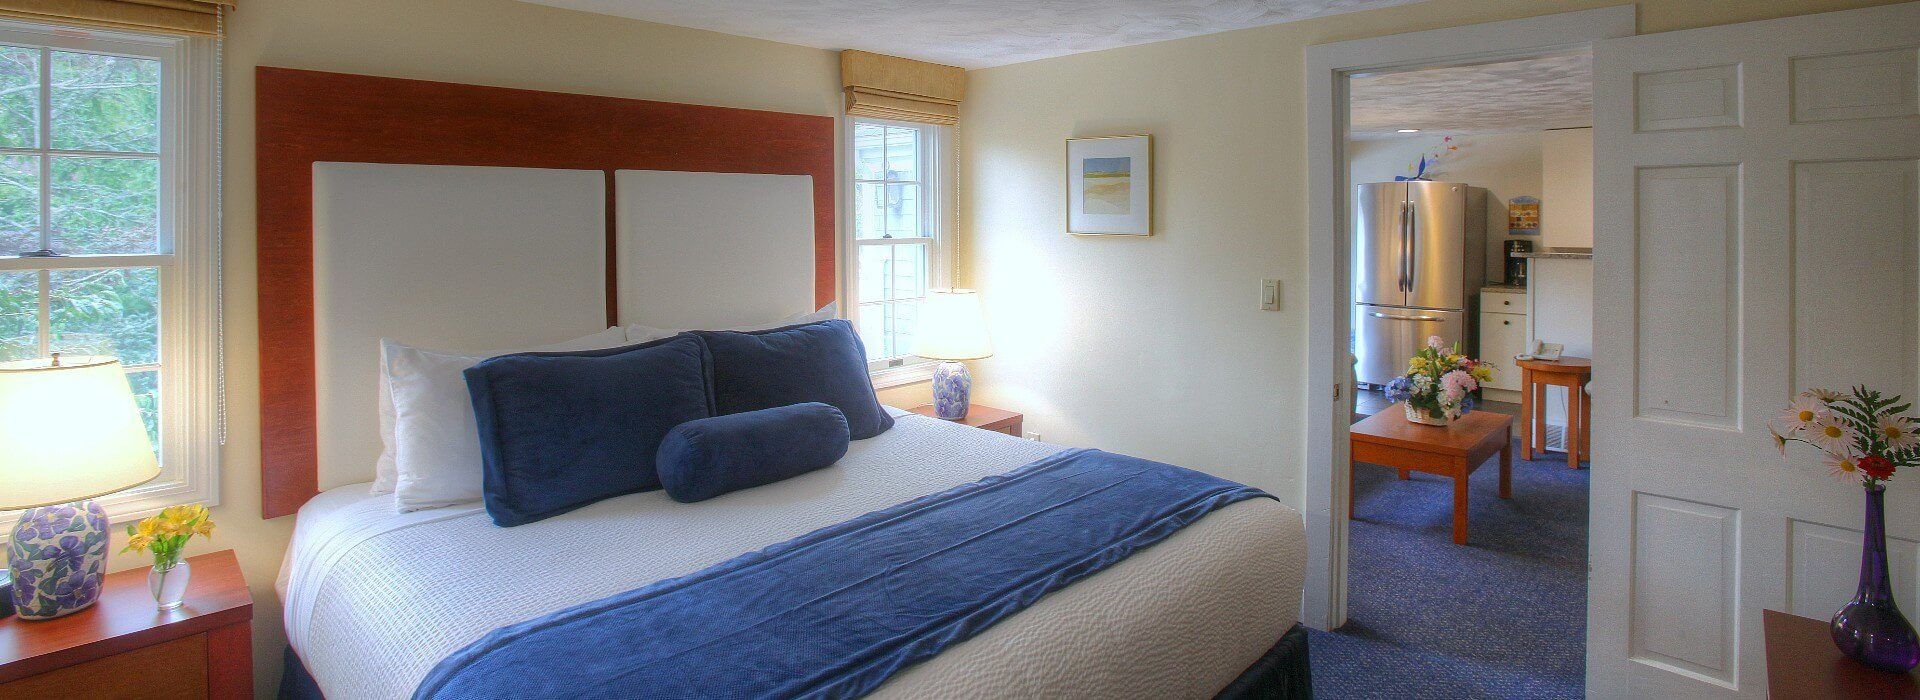 Large cottage bedroom with king bed, side tables under bright windows and doorway into sitting area and kitchenette